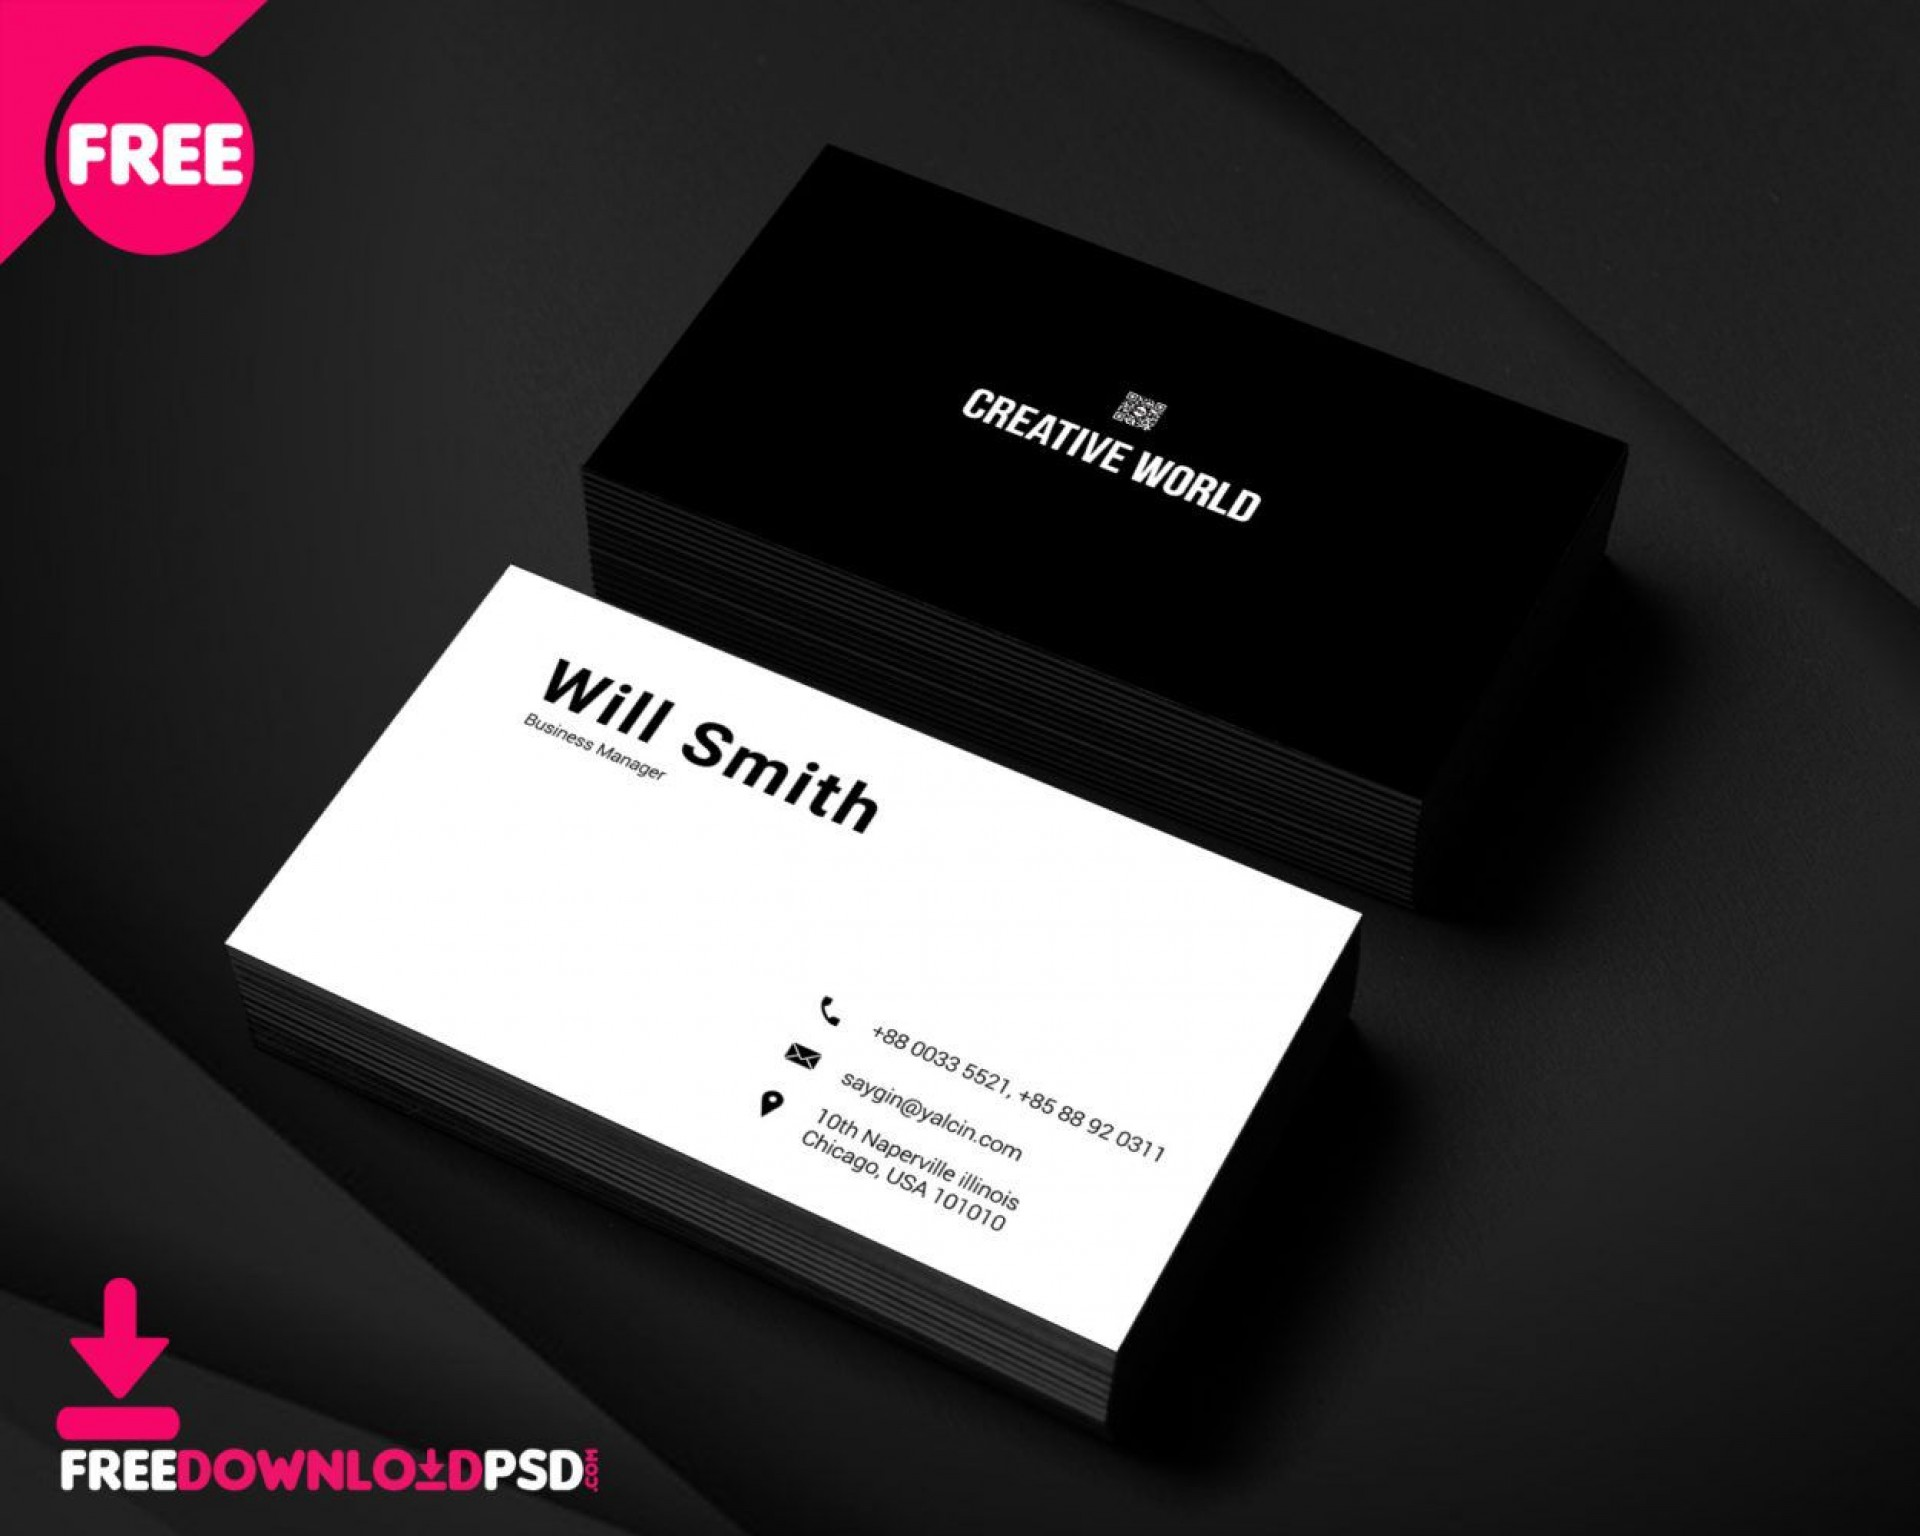 008 Dreaded Simple Busines Card Template Free High Resolution  Visiting Design Psd File Download Minimalist Basic1920